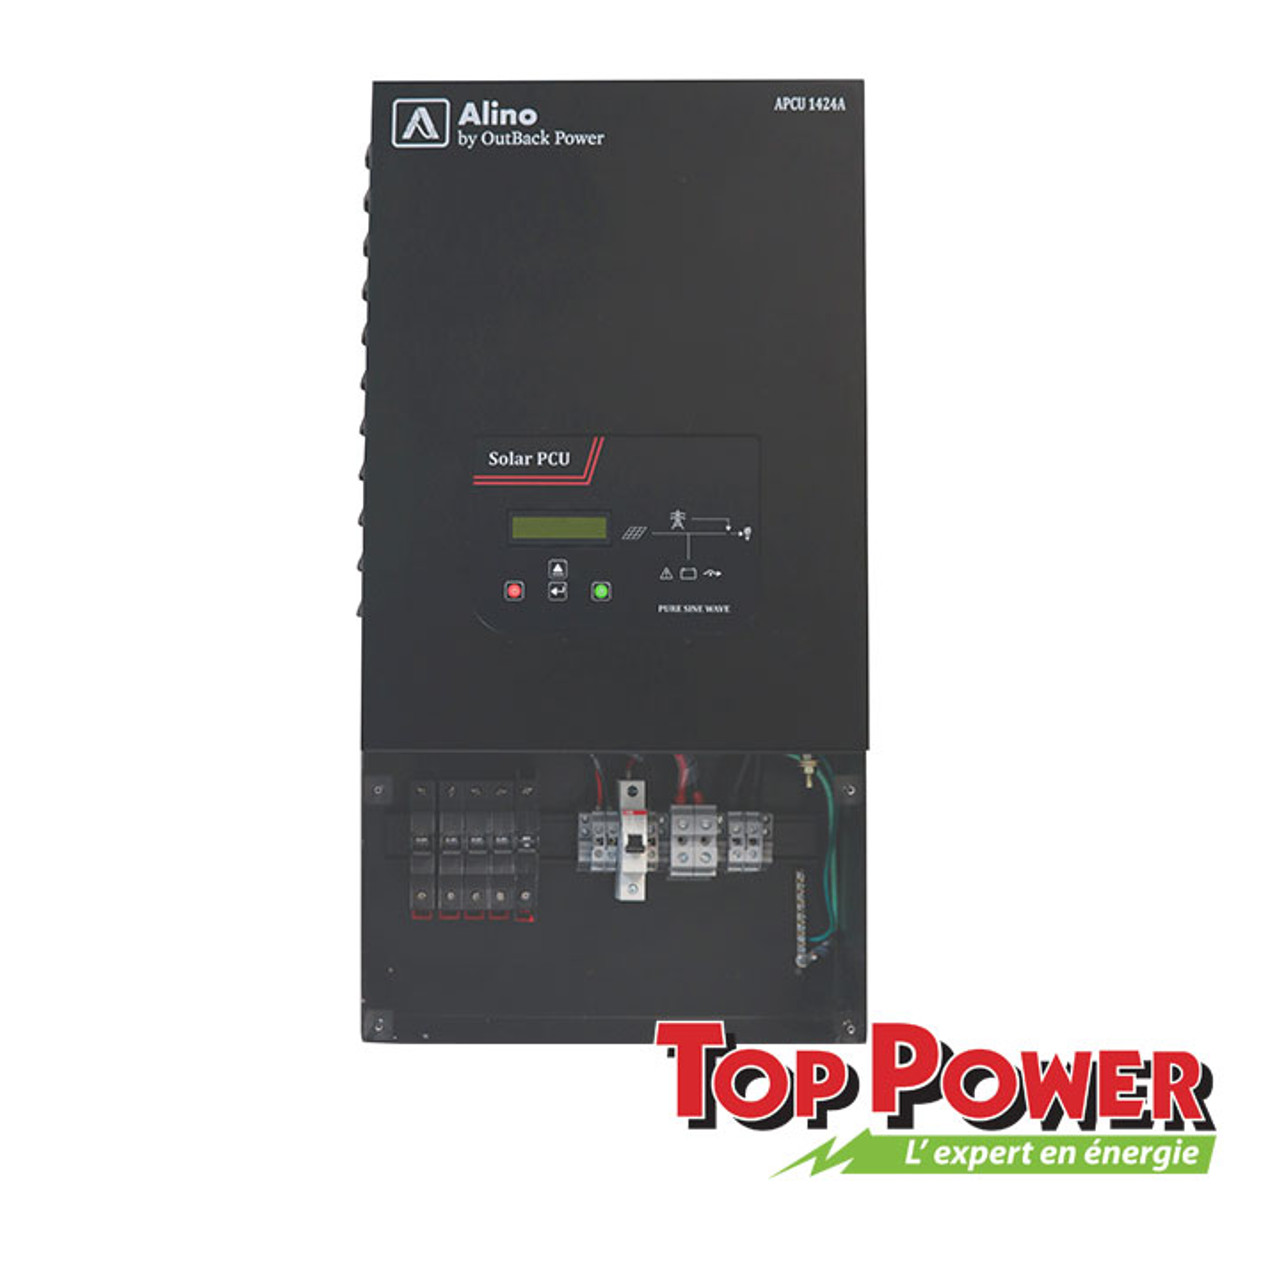 ALINO Outback All in One Inverter 1 4KVA @ 24Vdc - Top Power